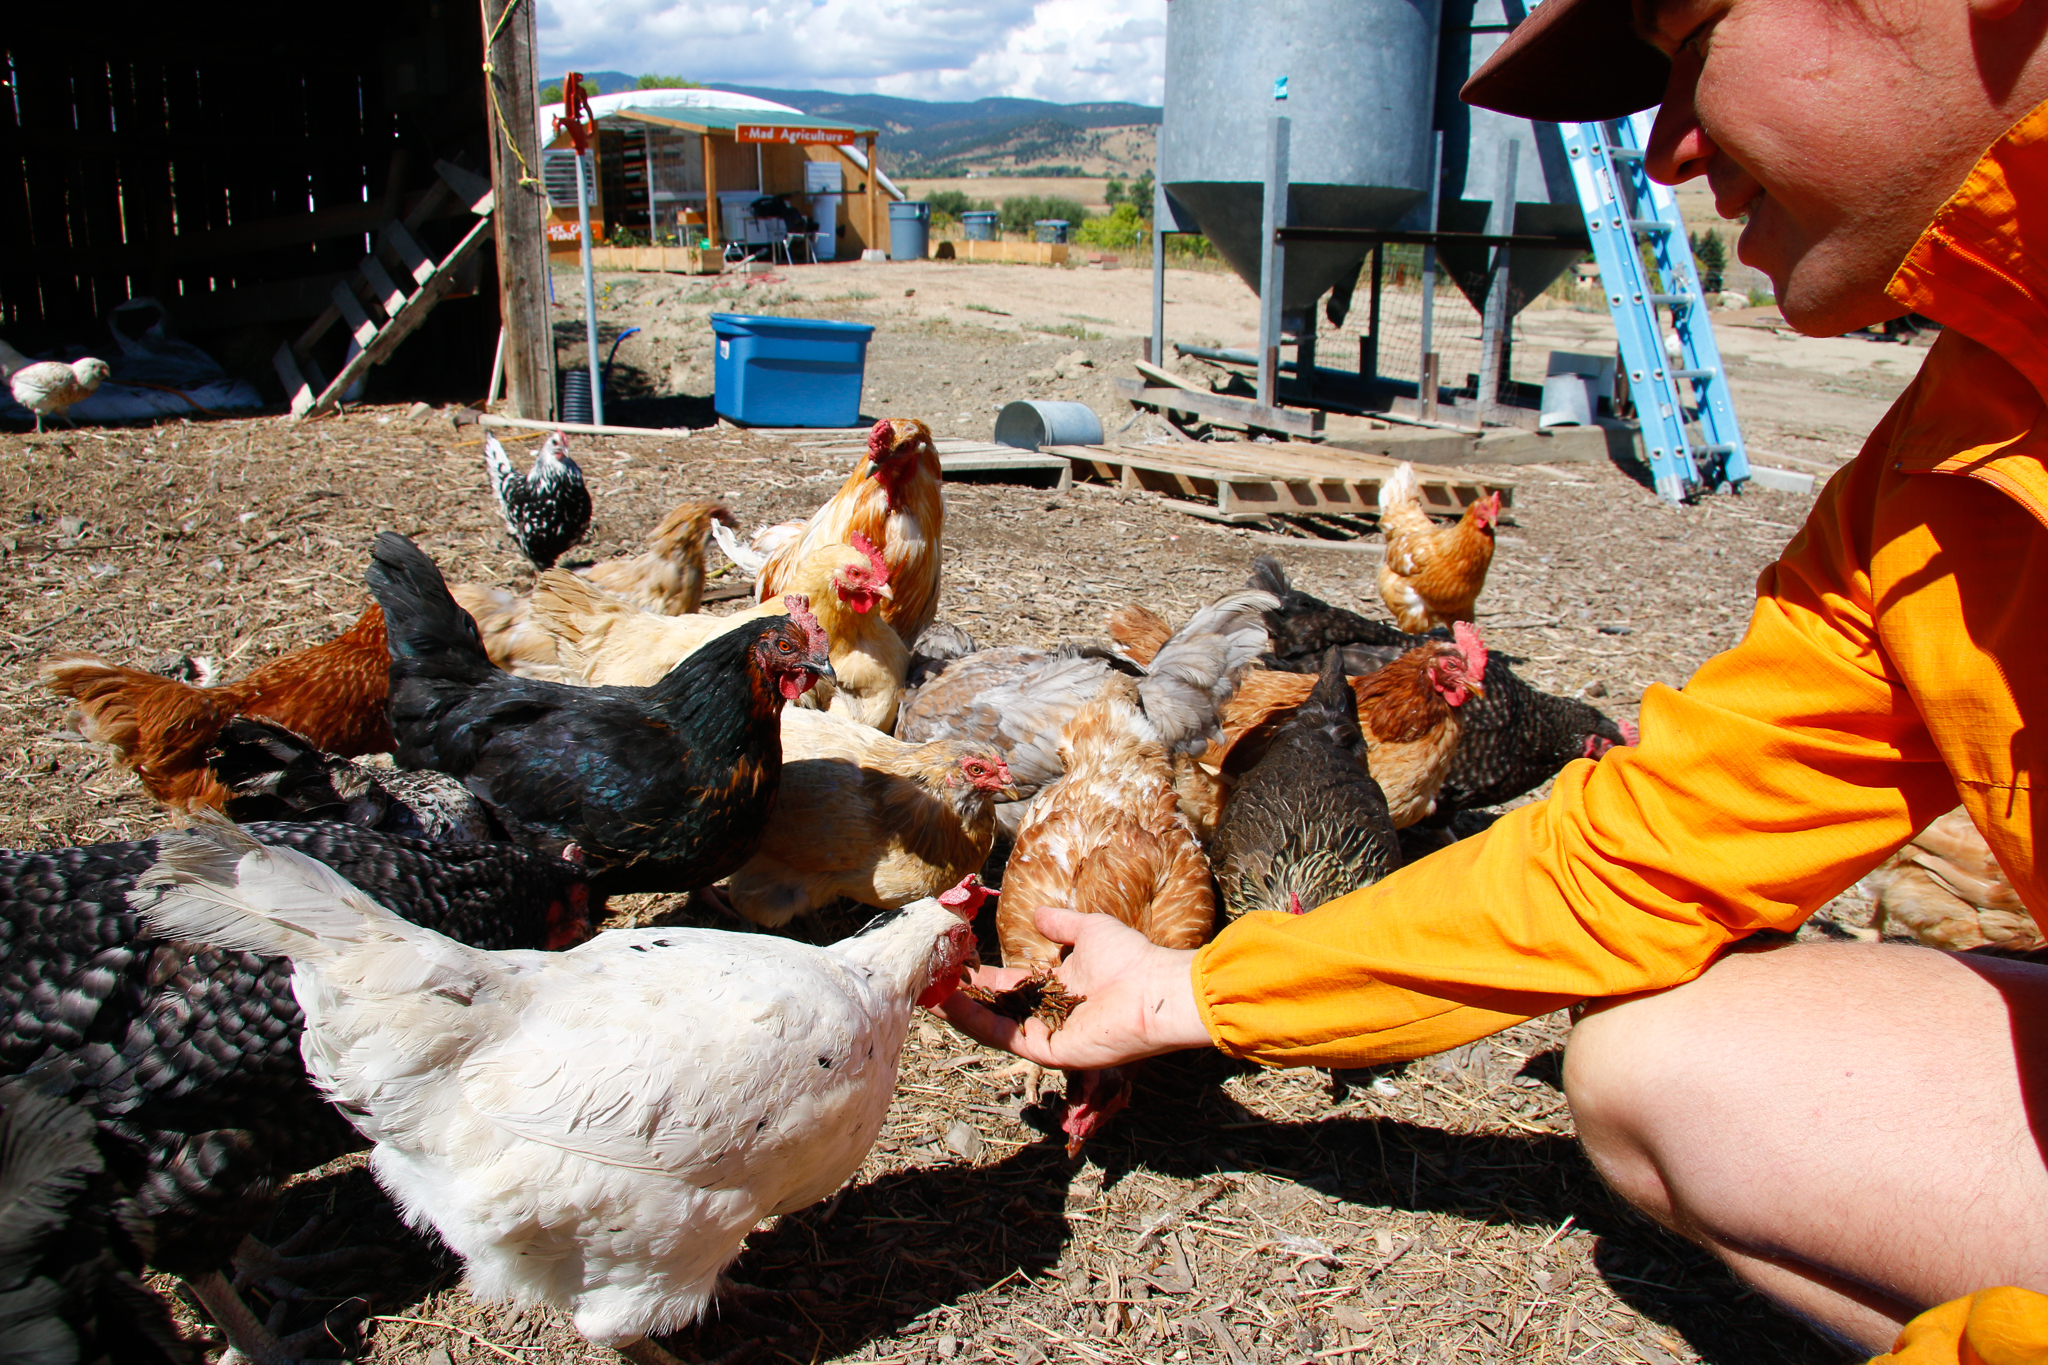 In the comings months, Phil Taylor will launch poultry feeding trials in partnership with the University of Colorado Boulder.